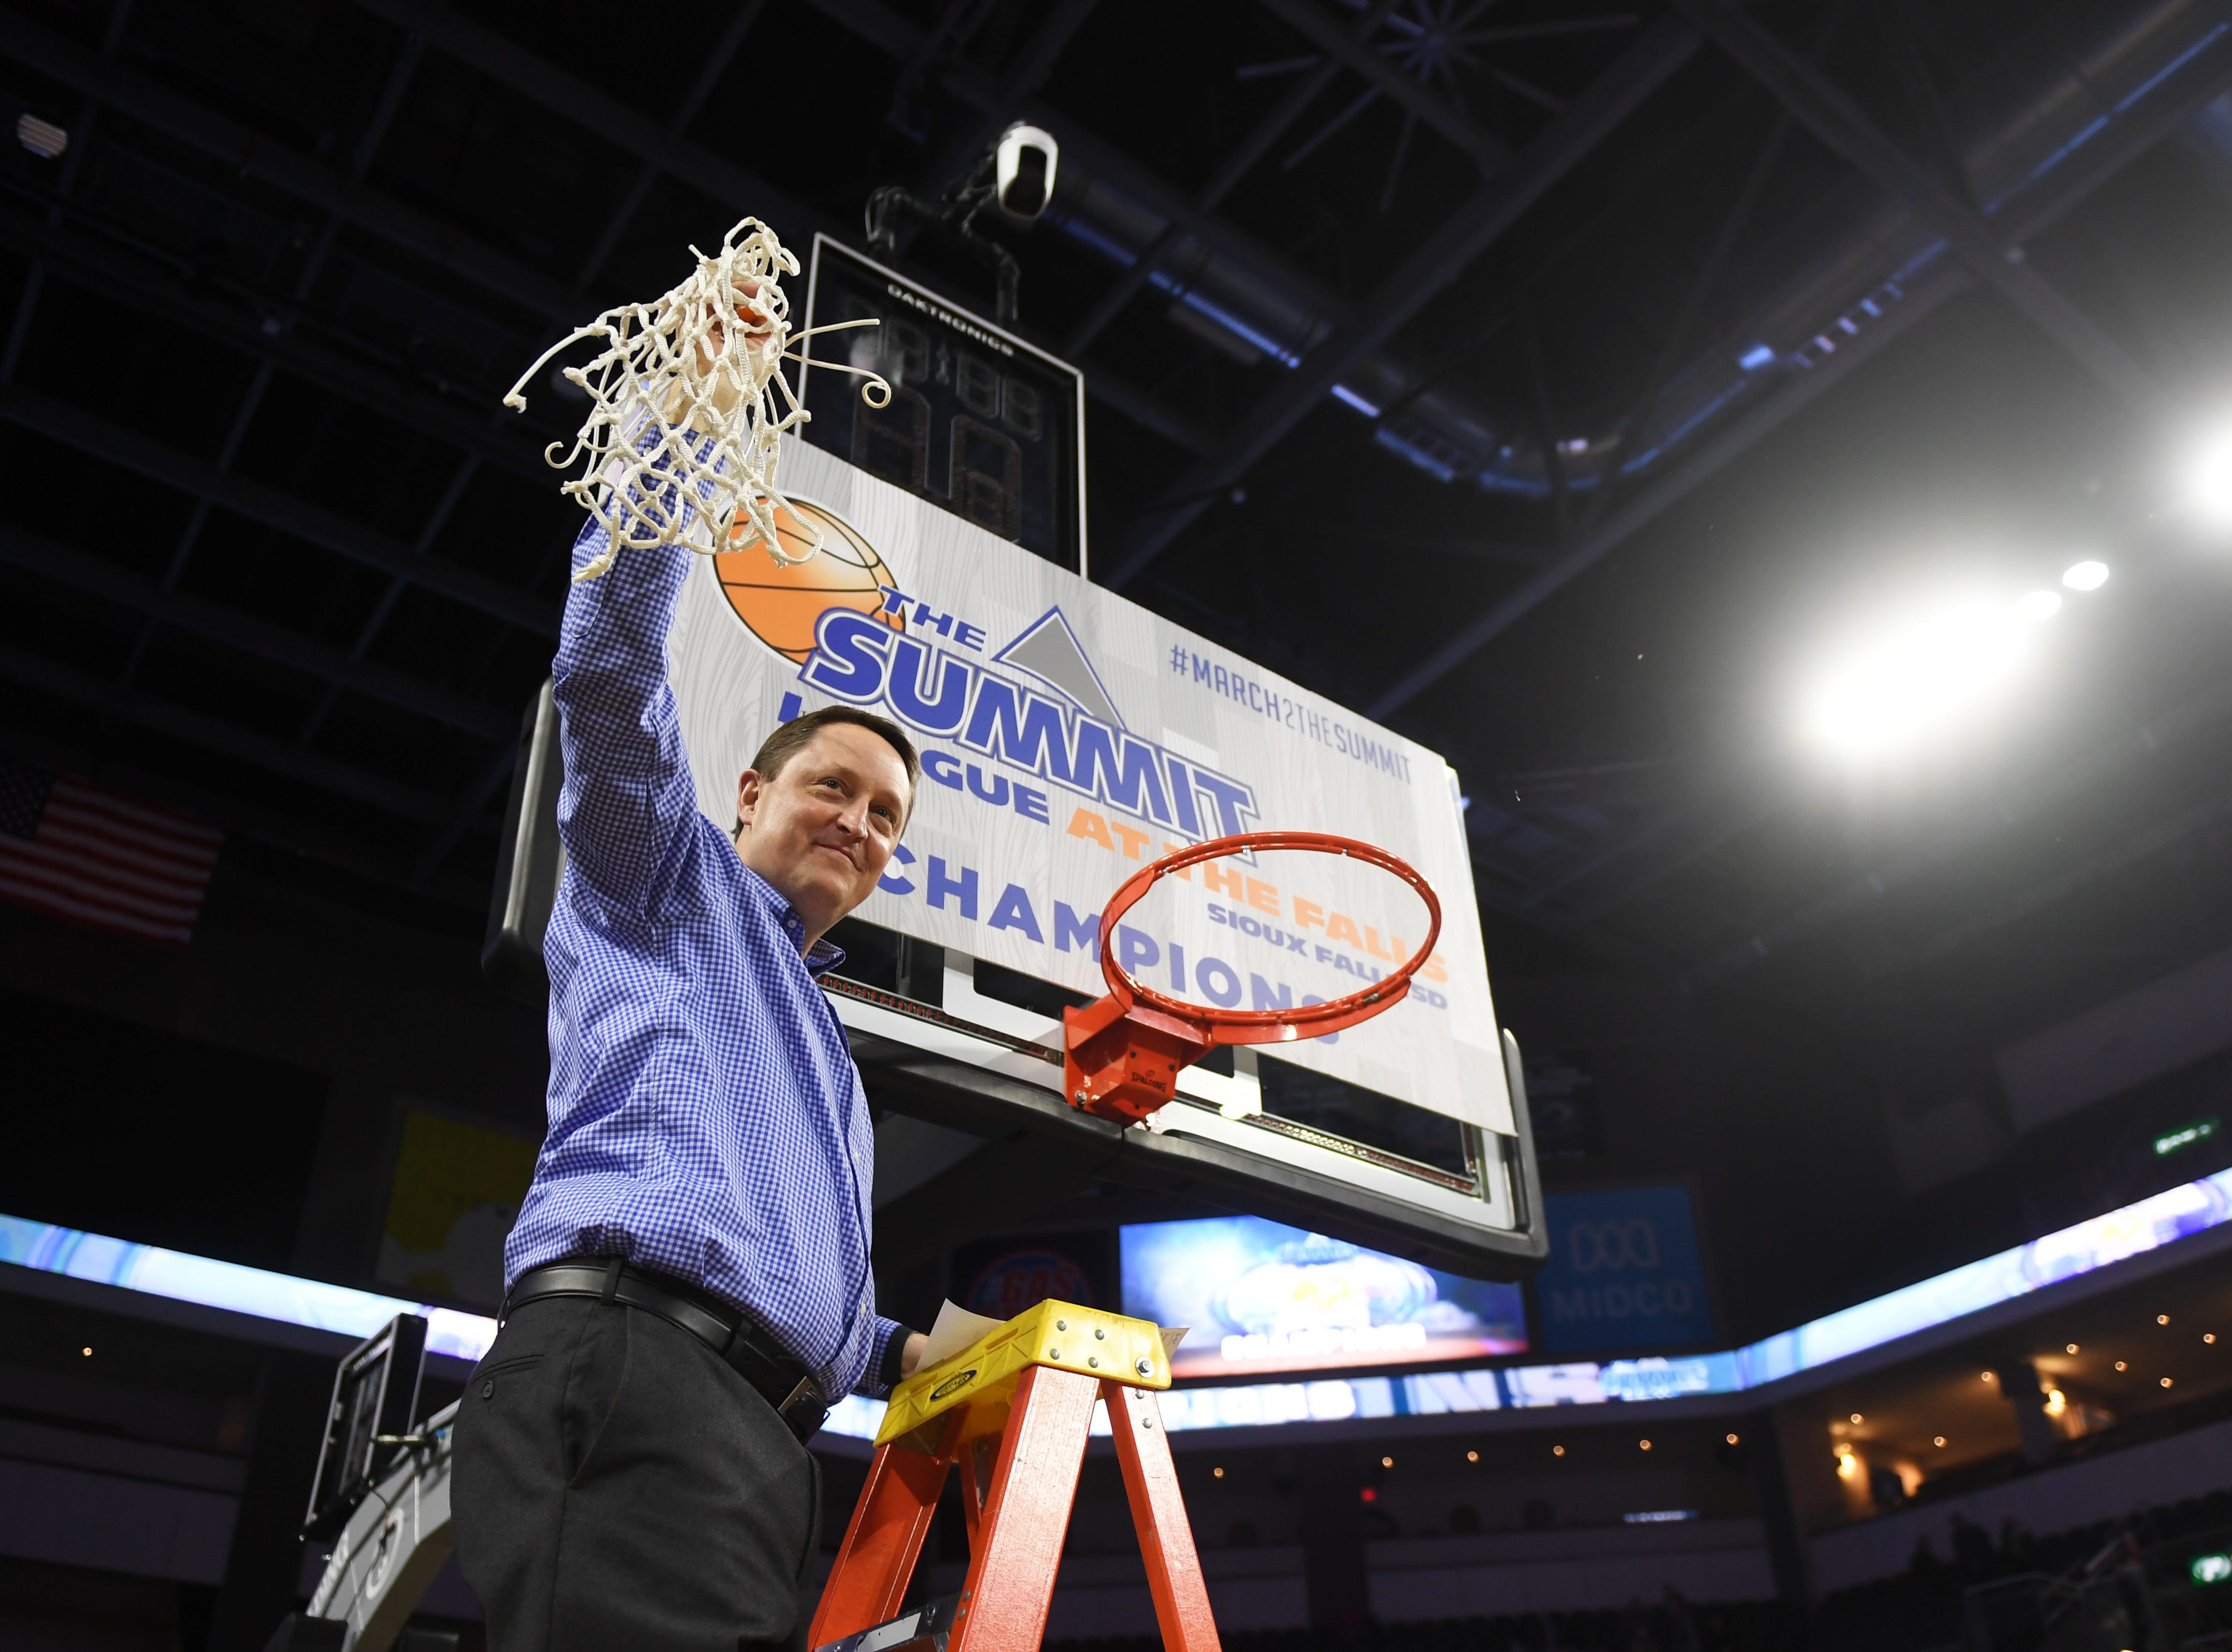 SDSU's head coach Aaron Johnston cuts the net after their win against USD Tuesday, March 12, in the Summit League women's championship at the Denny Sanford Premier Center in Sioux Falls.